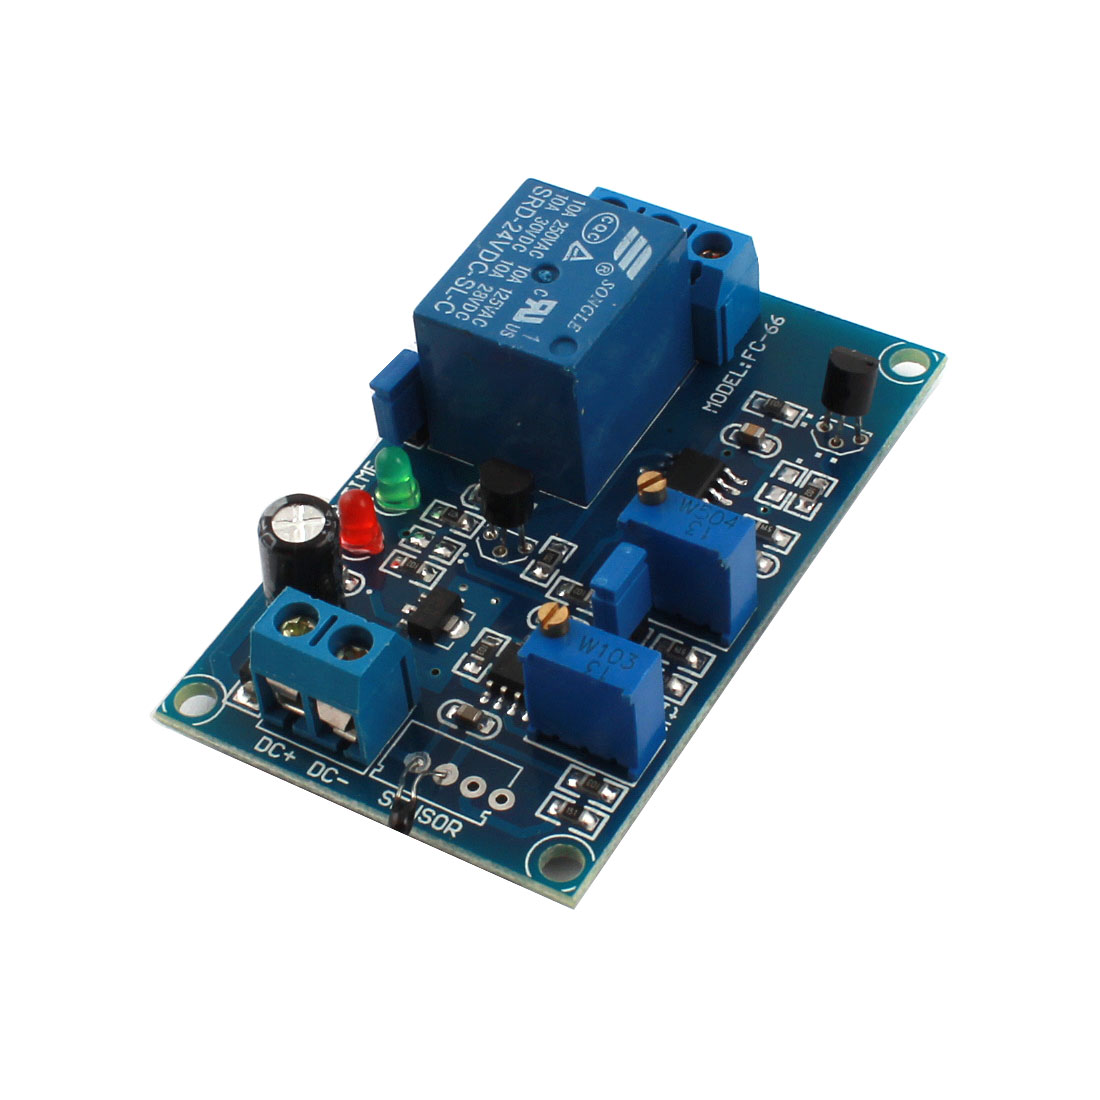 DC24V 0-20s 1 Channel Low Temperature Trigger Thermosensitive Time Delay PCB Board Relay Module Blue